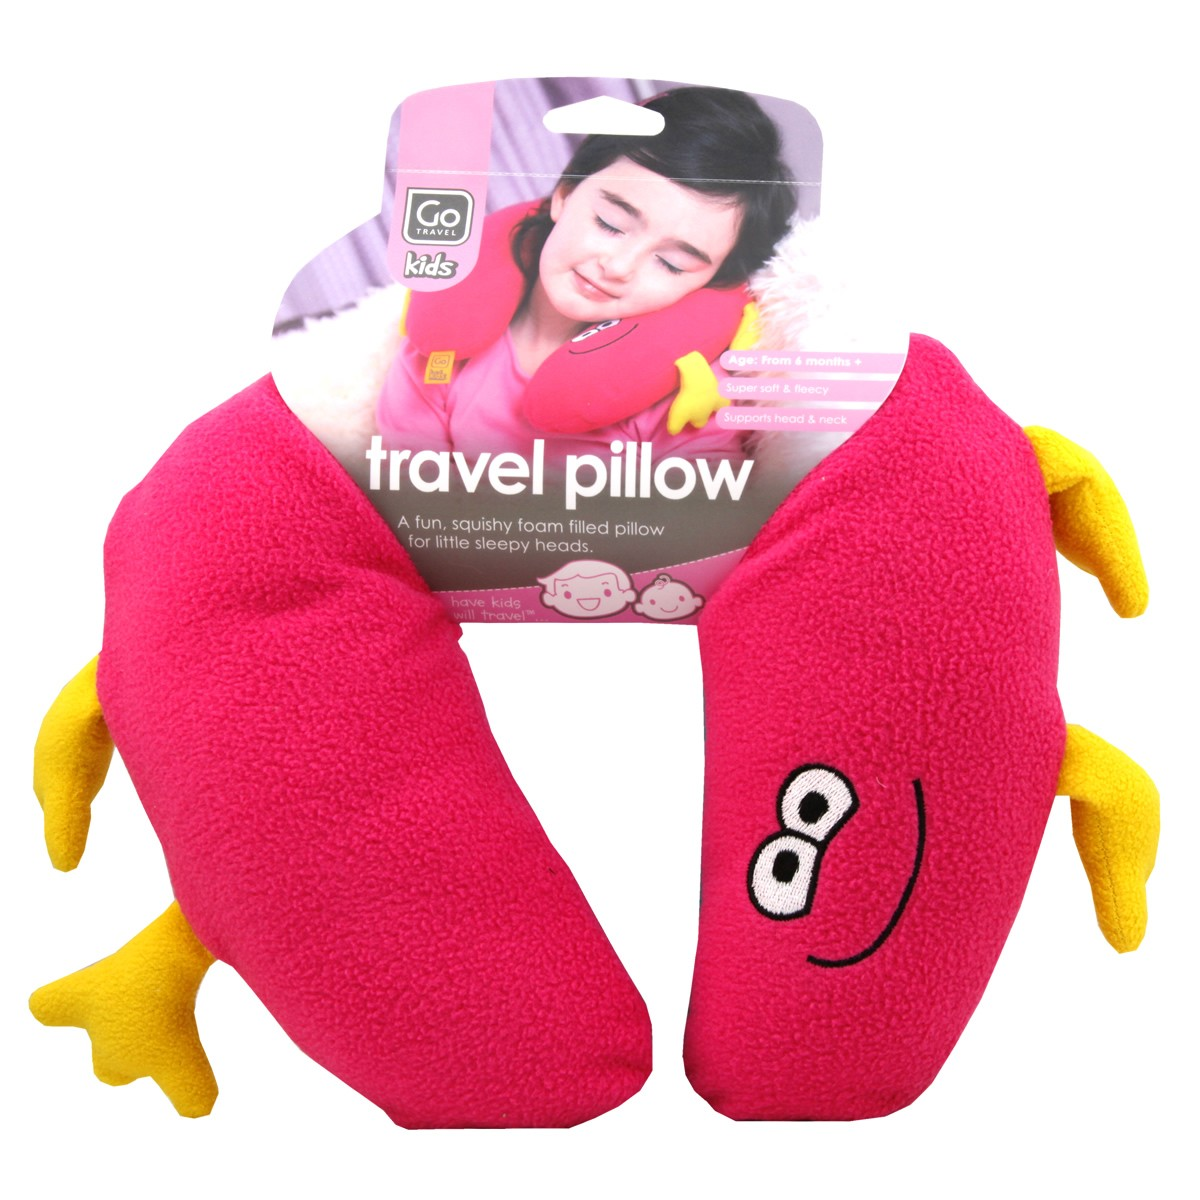 Go Travel Kids Travel Pillow